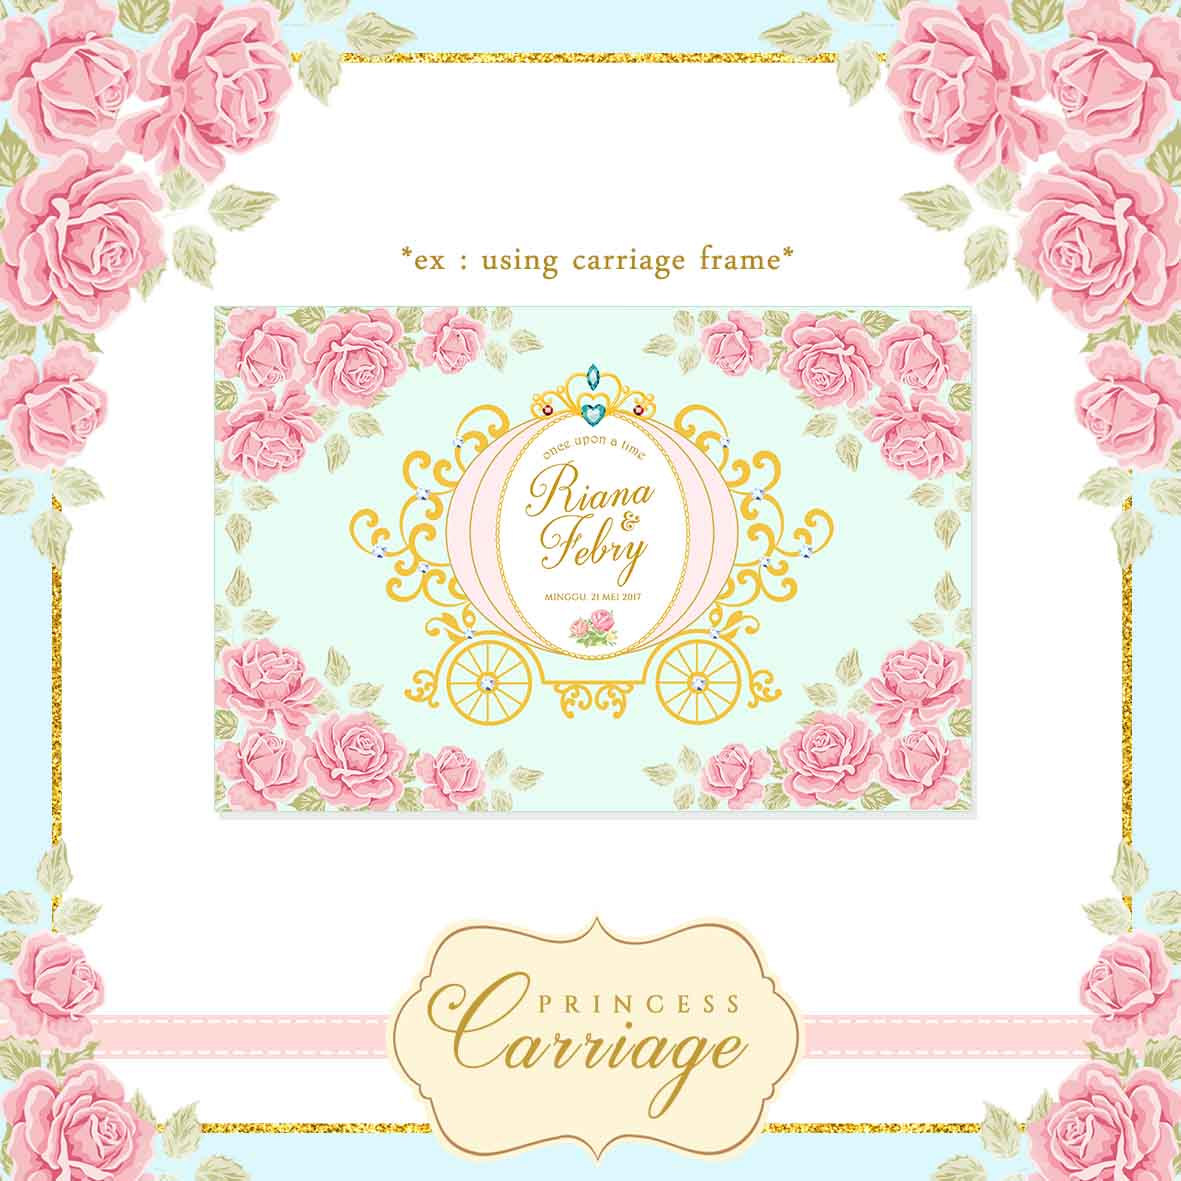 Carriage clipart frame Is Vintage Carriage file digital